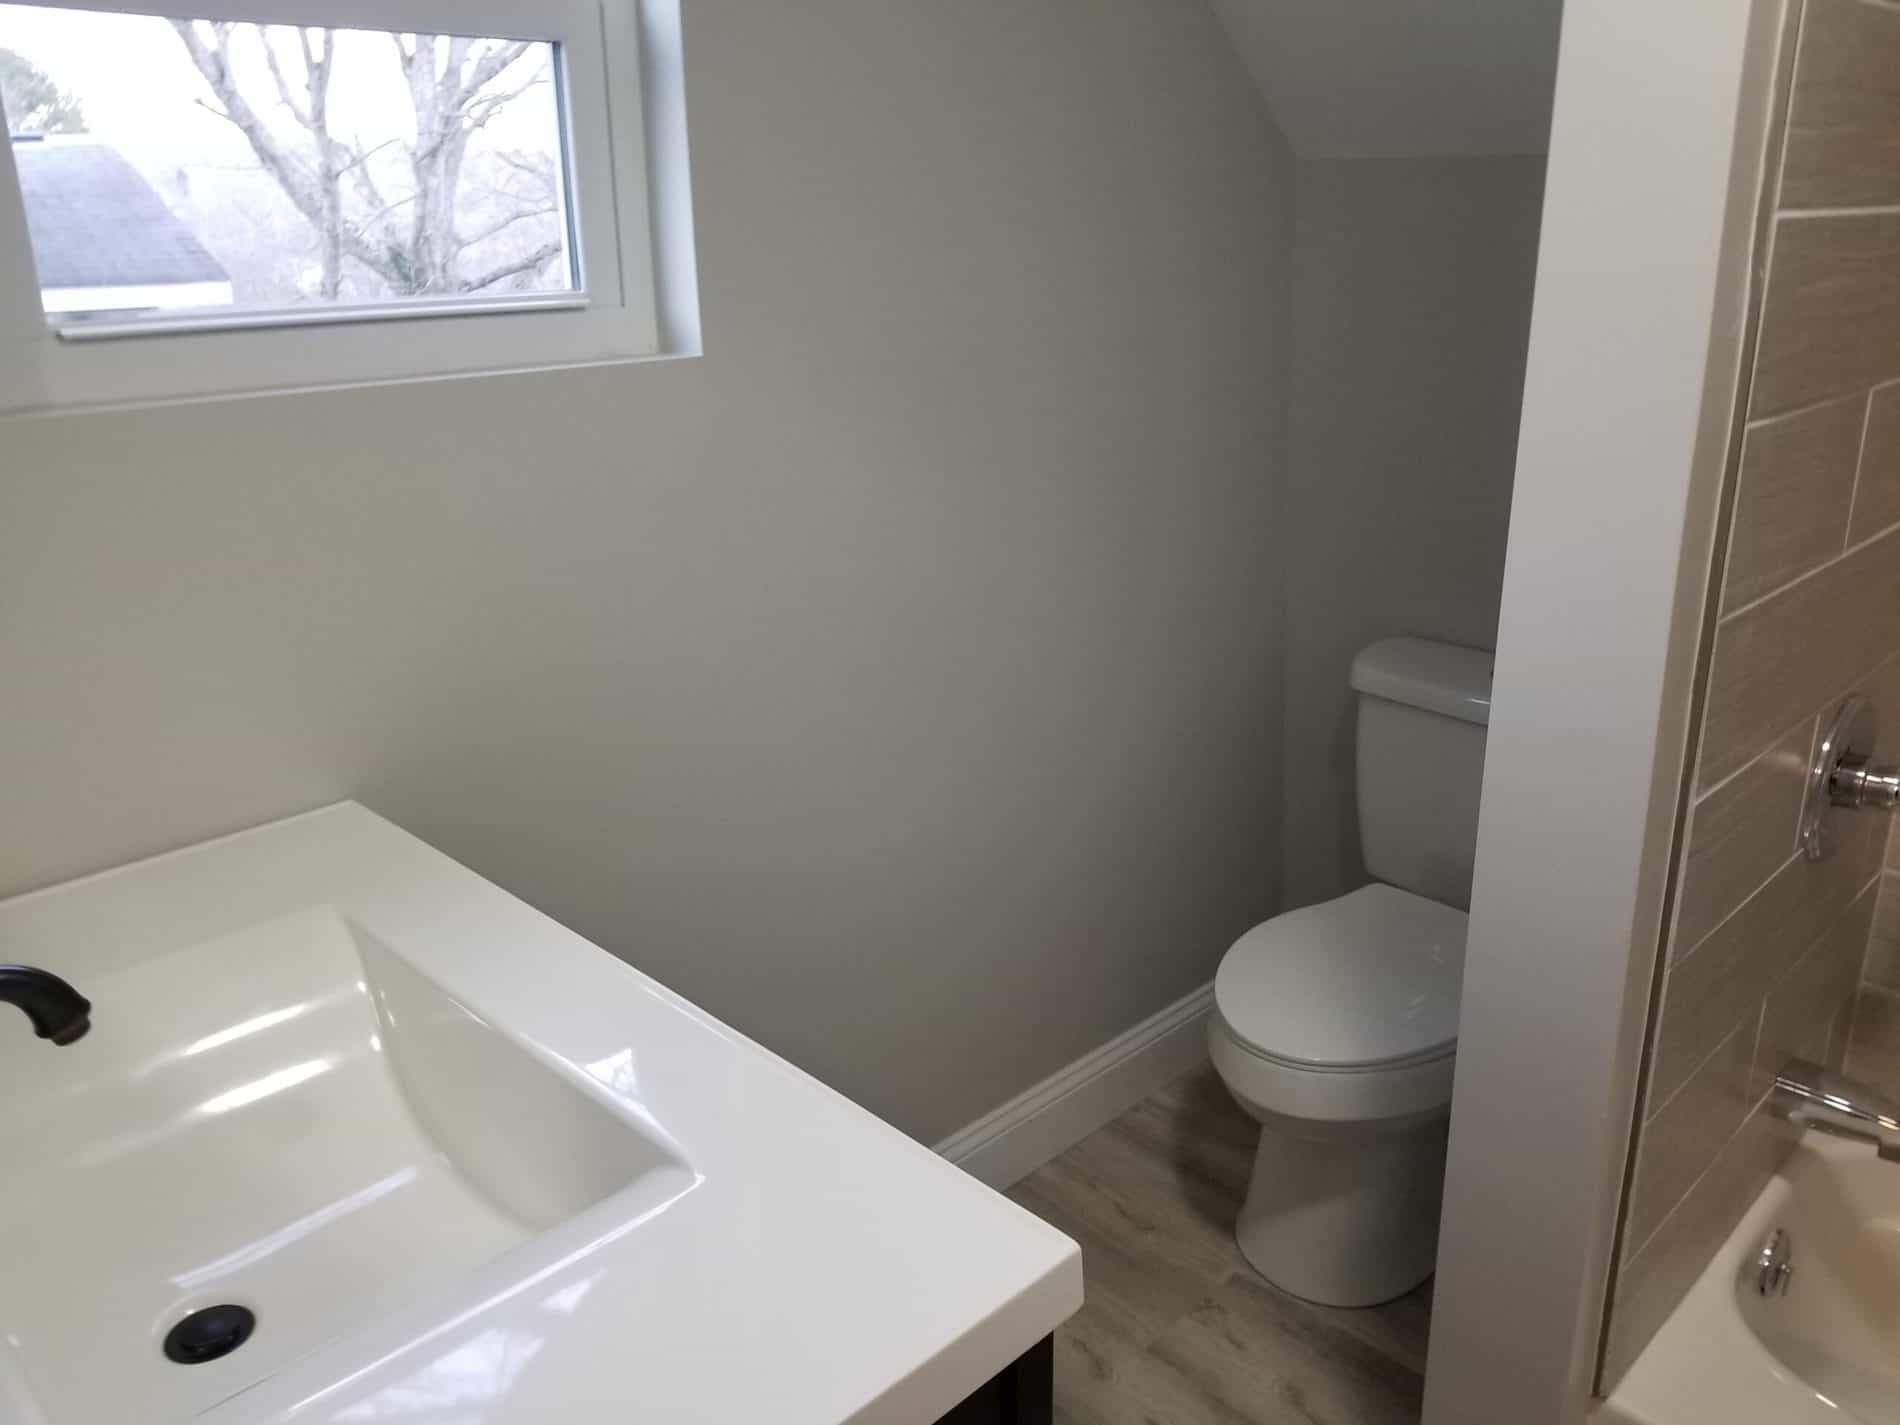 Home Remodel with bathroom on second floor with modern walls